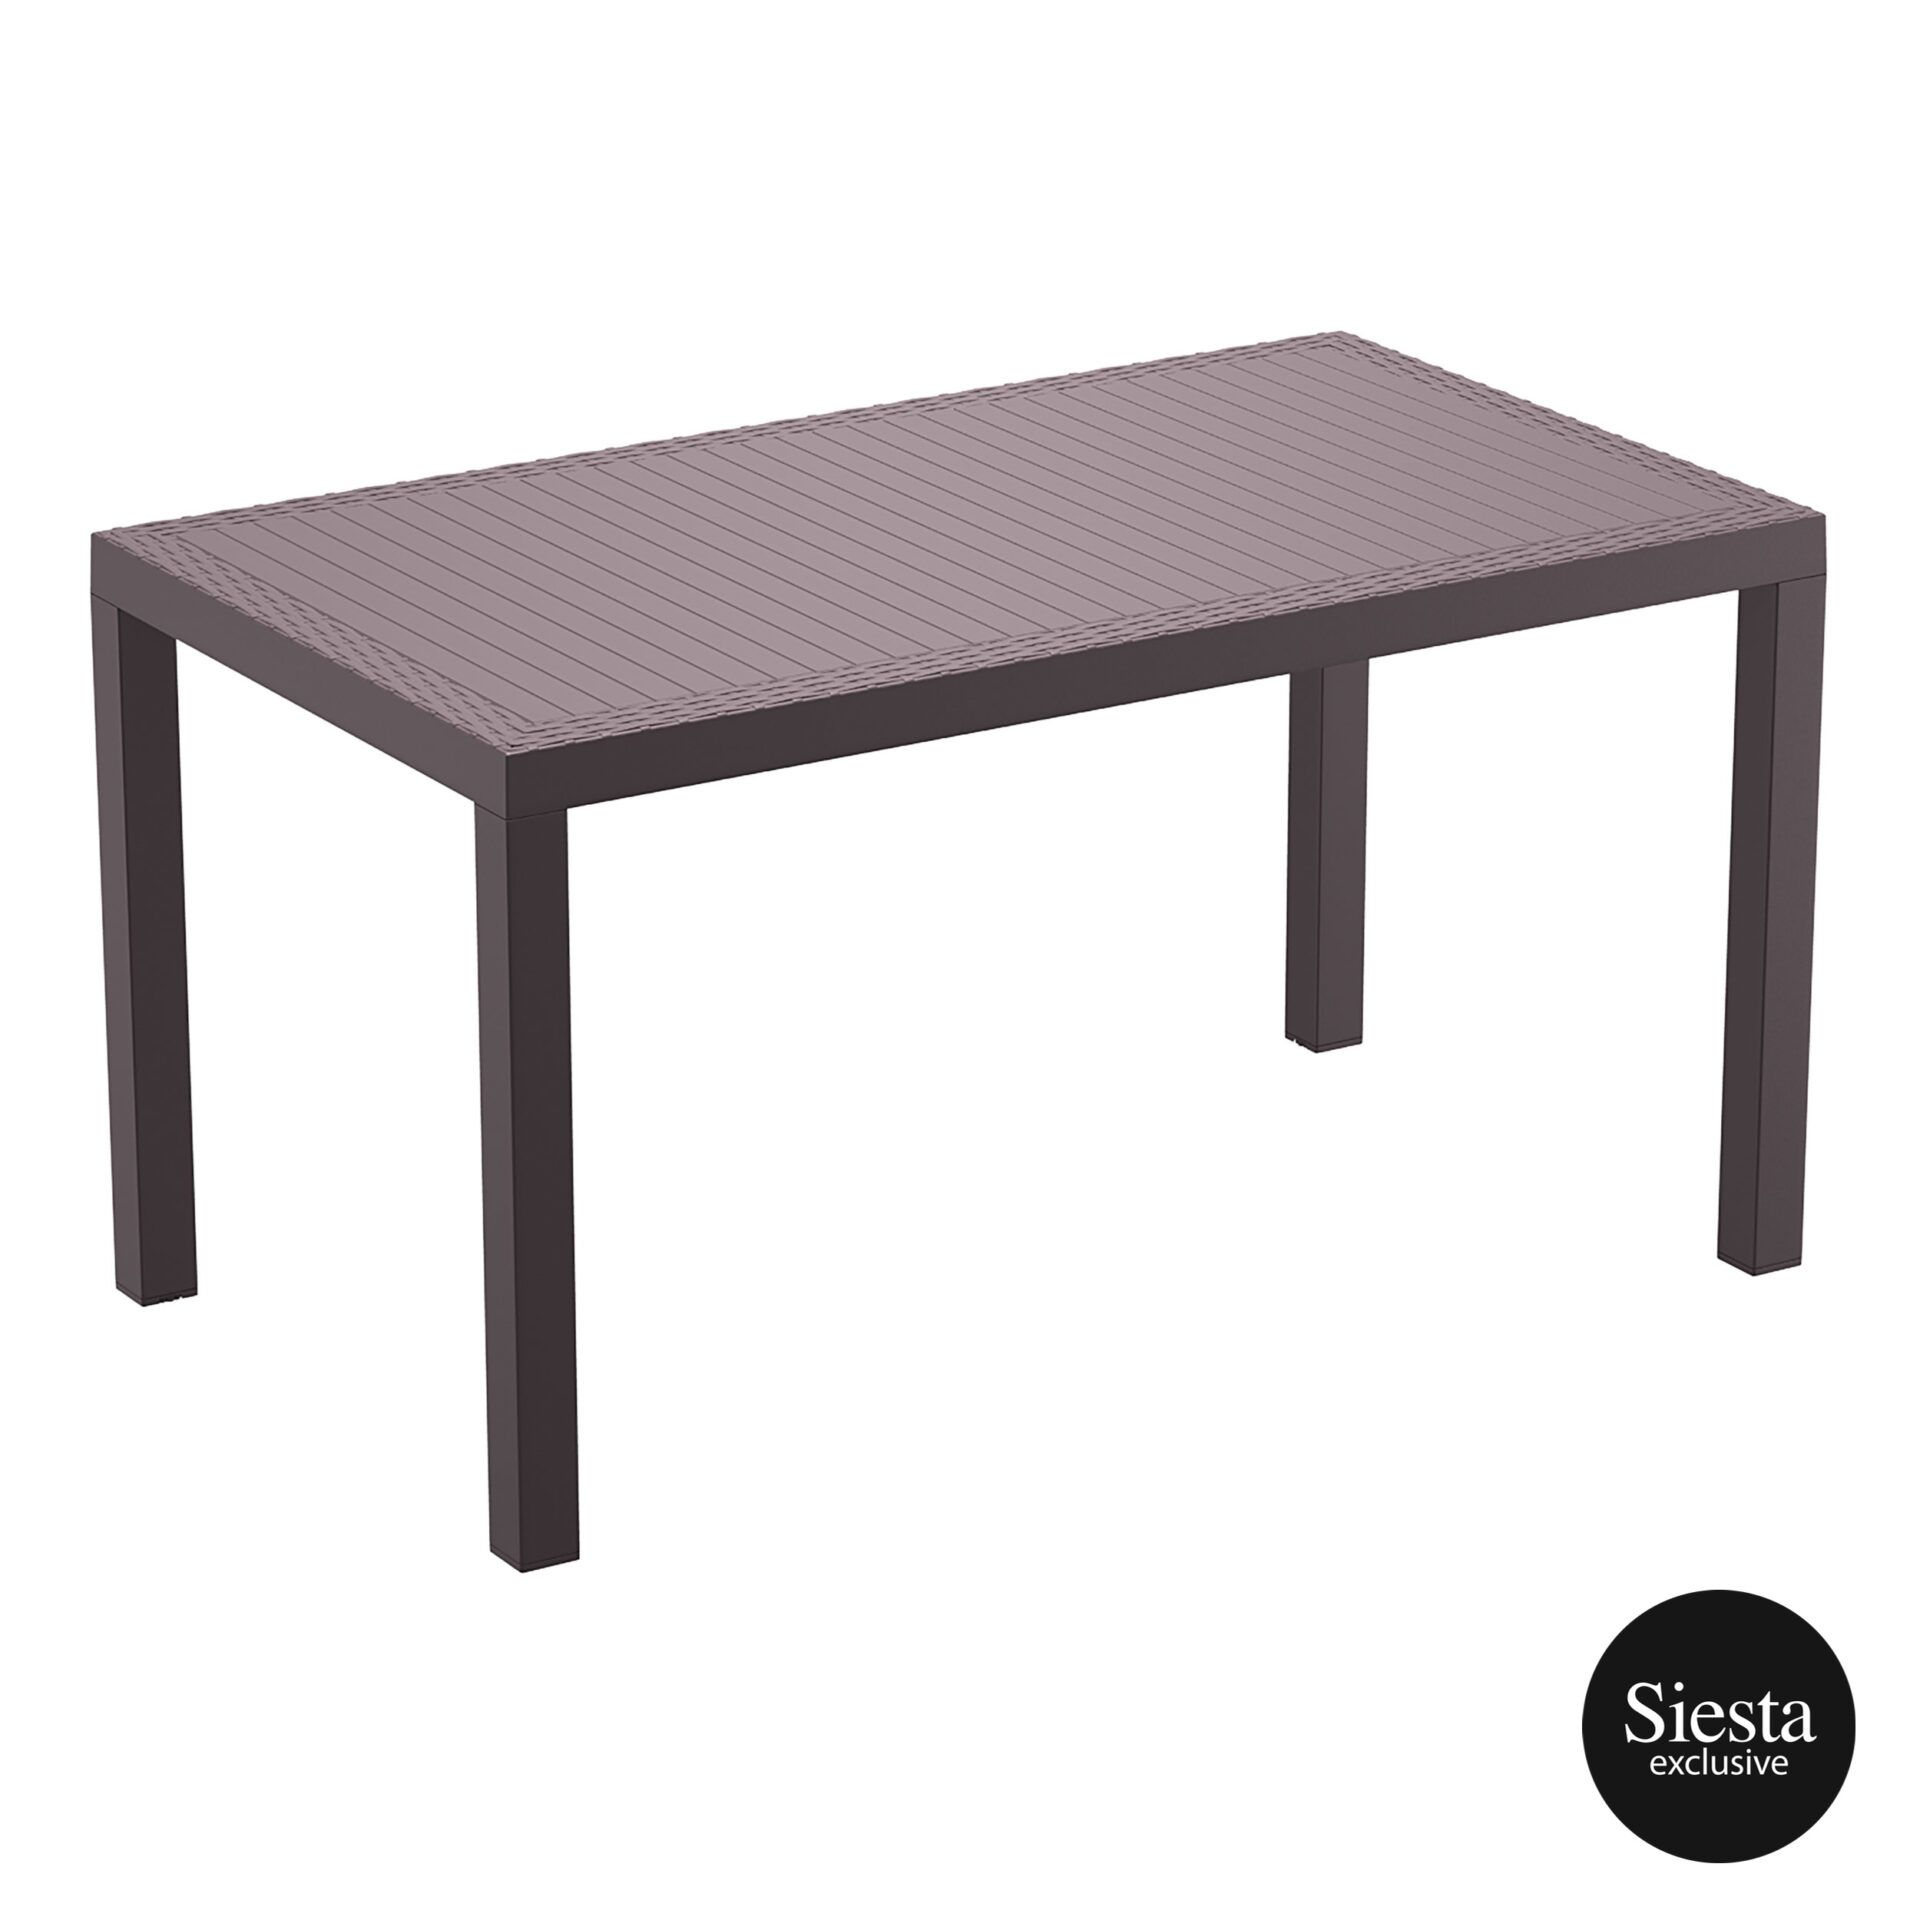 outdoor resin rattan cafe plastic top bali table 140 brown front side 1